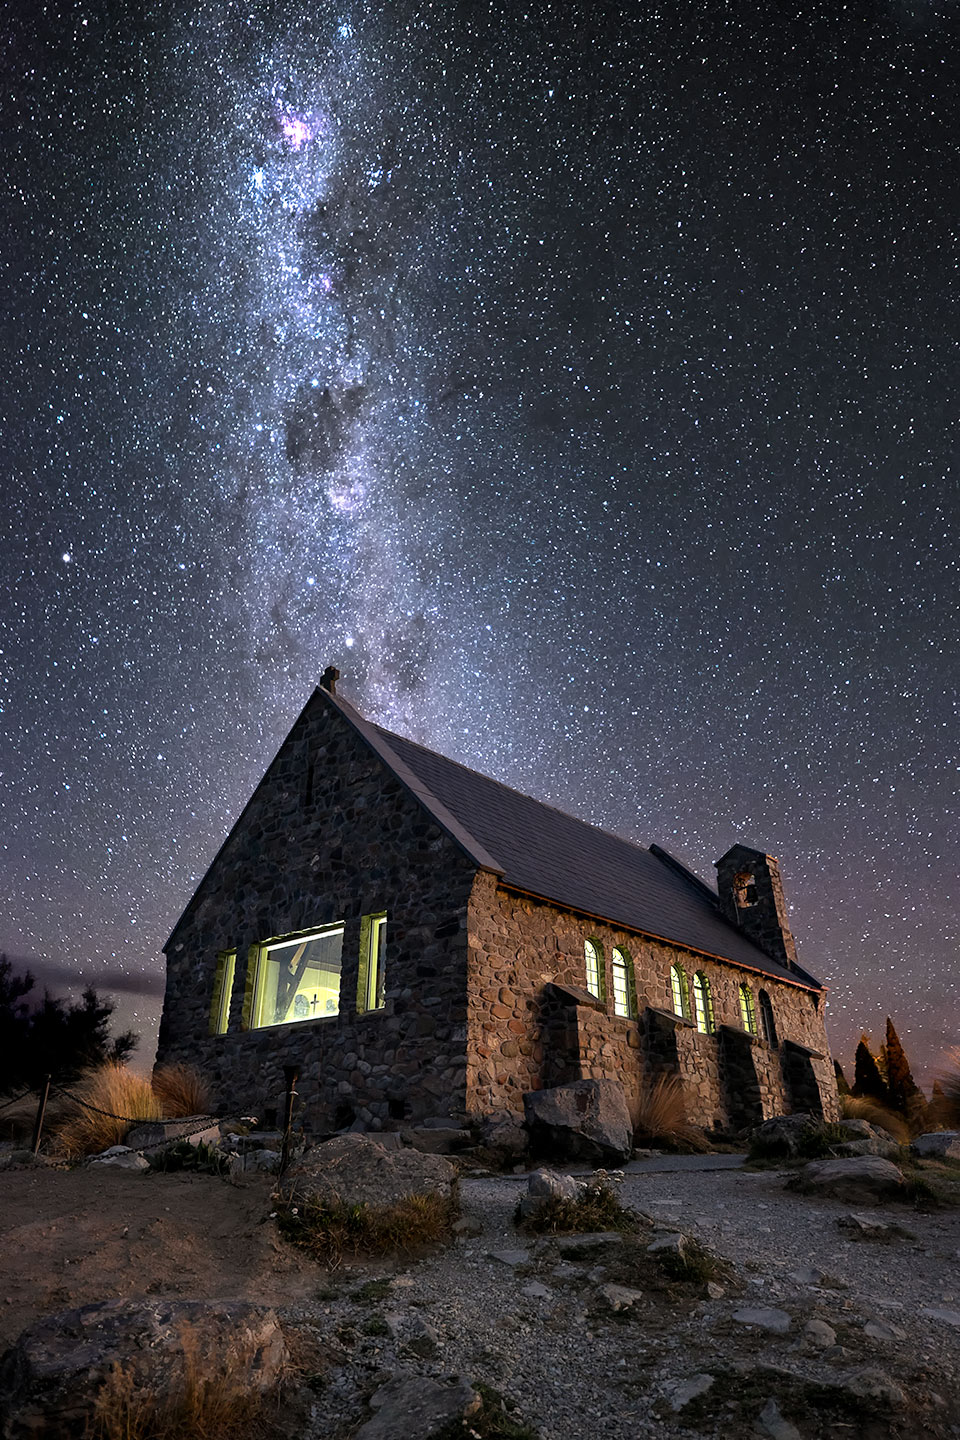 Lake Tekapo, New Zealand - March 2014 - Fujifilm X-E2 | Fujinon XF 14mm Lens | f/2.8 | ISO 1600 | 25 sec